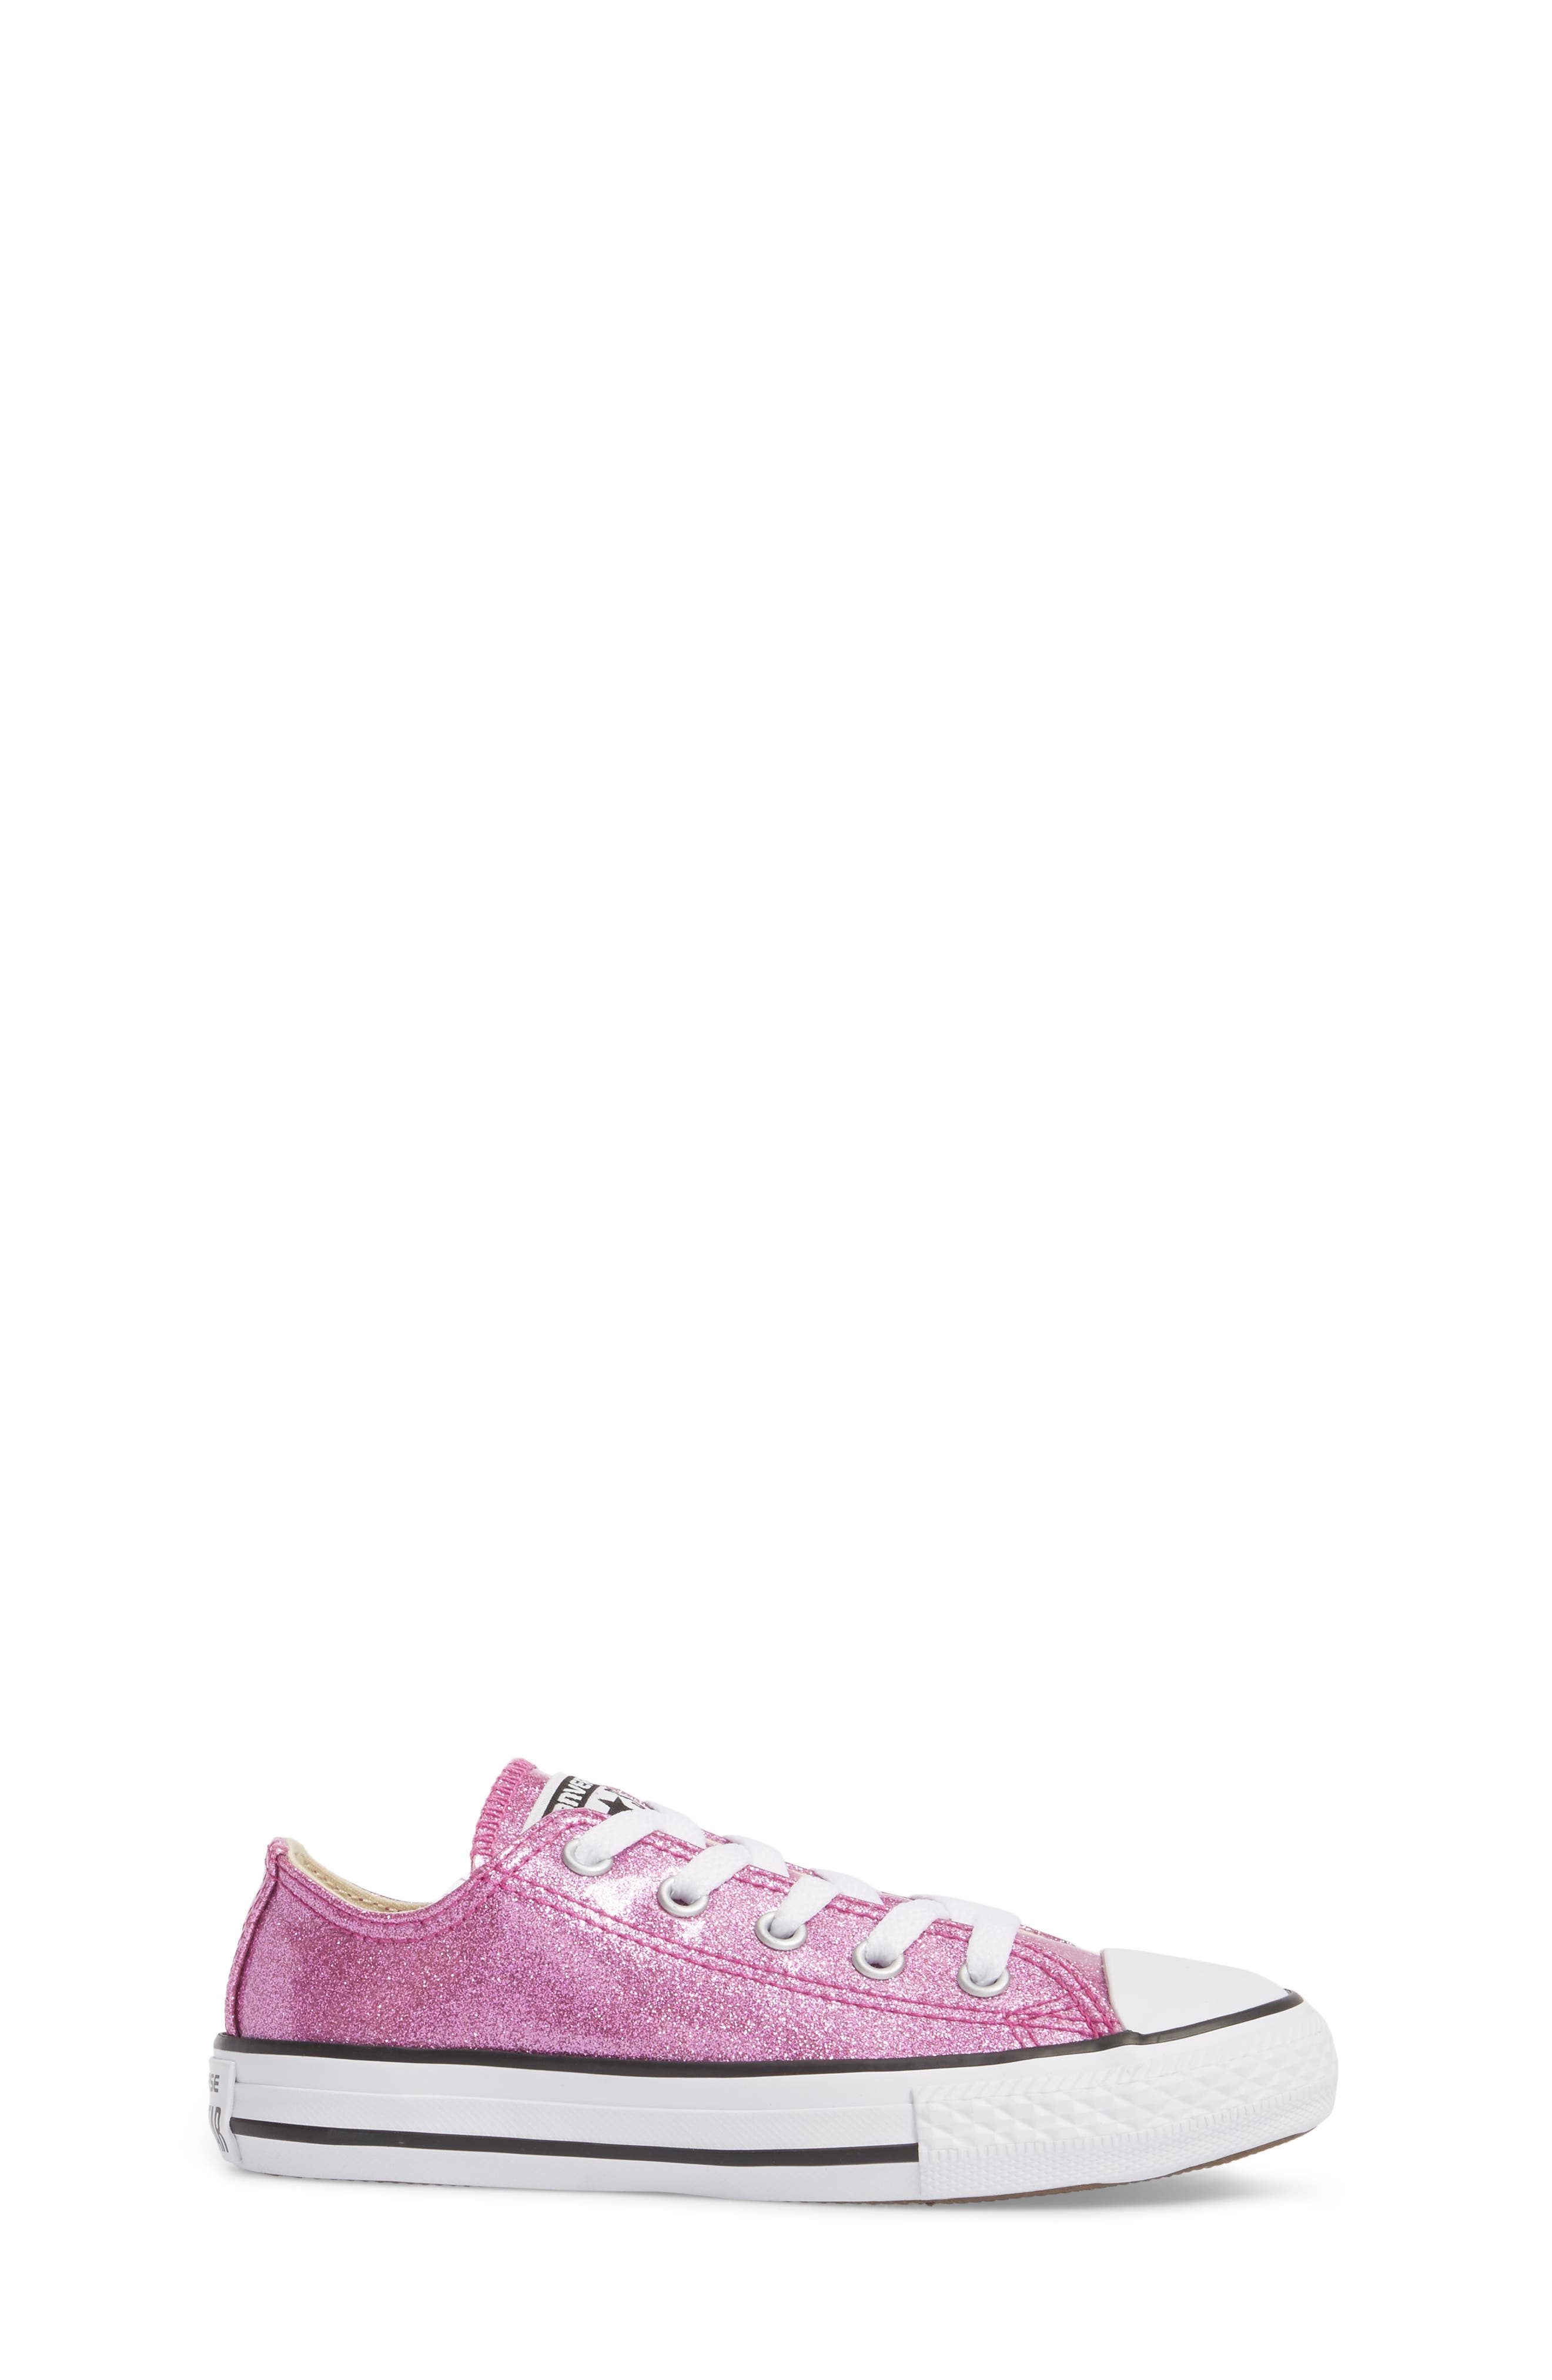 All Star<sup>®</sup> Seasonal Glitter OX Low Top Sneaker,                             Alternate thumbnail 3, color,                             Bright Violet